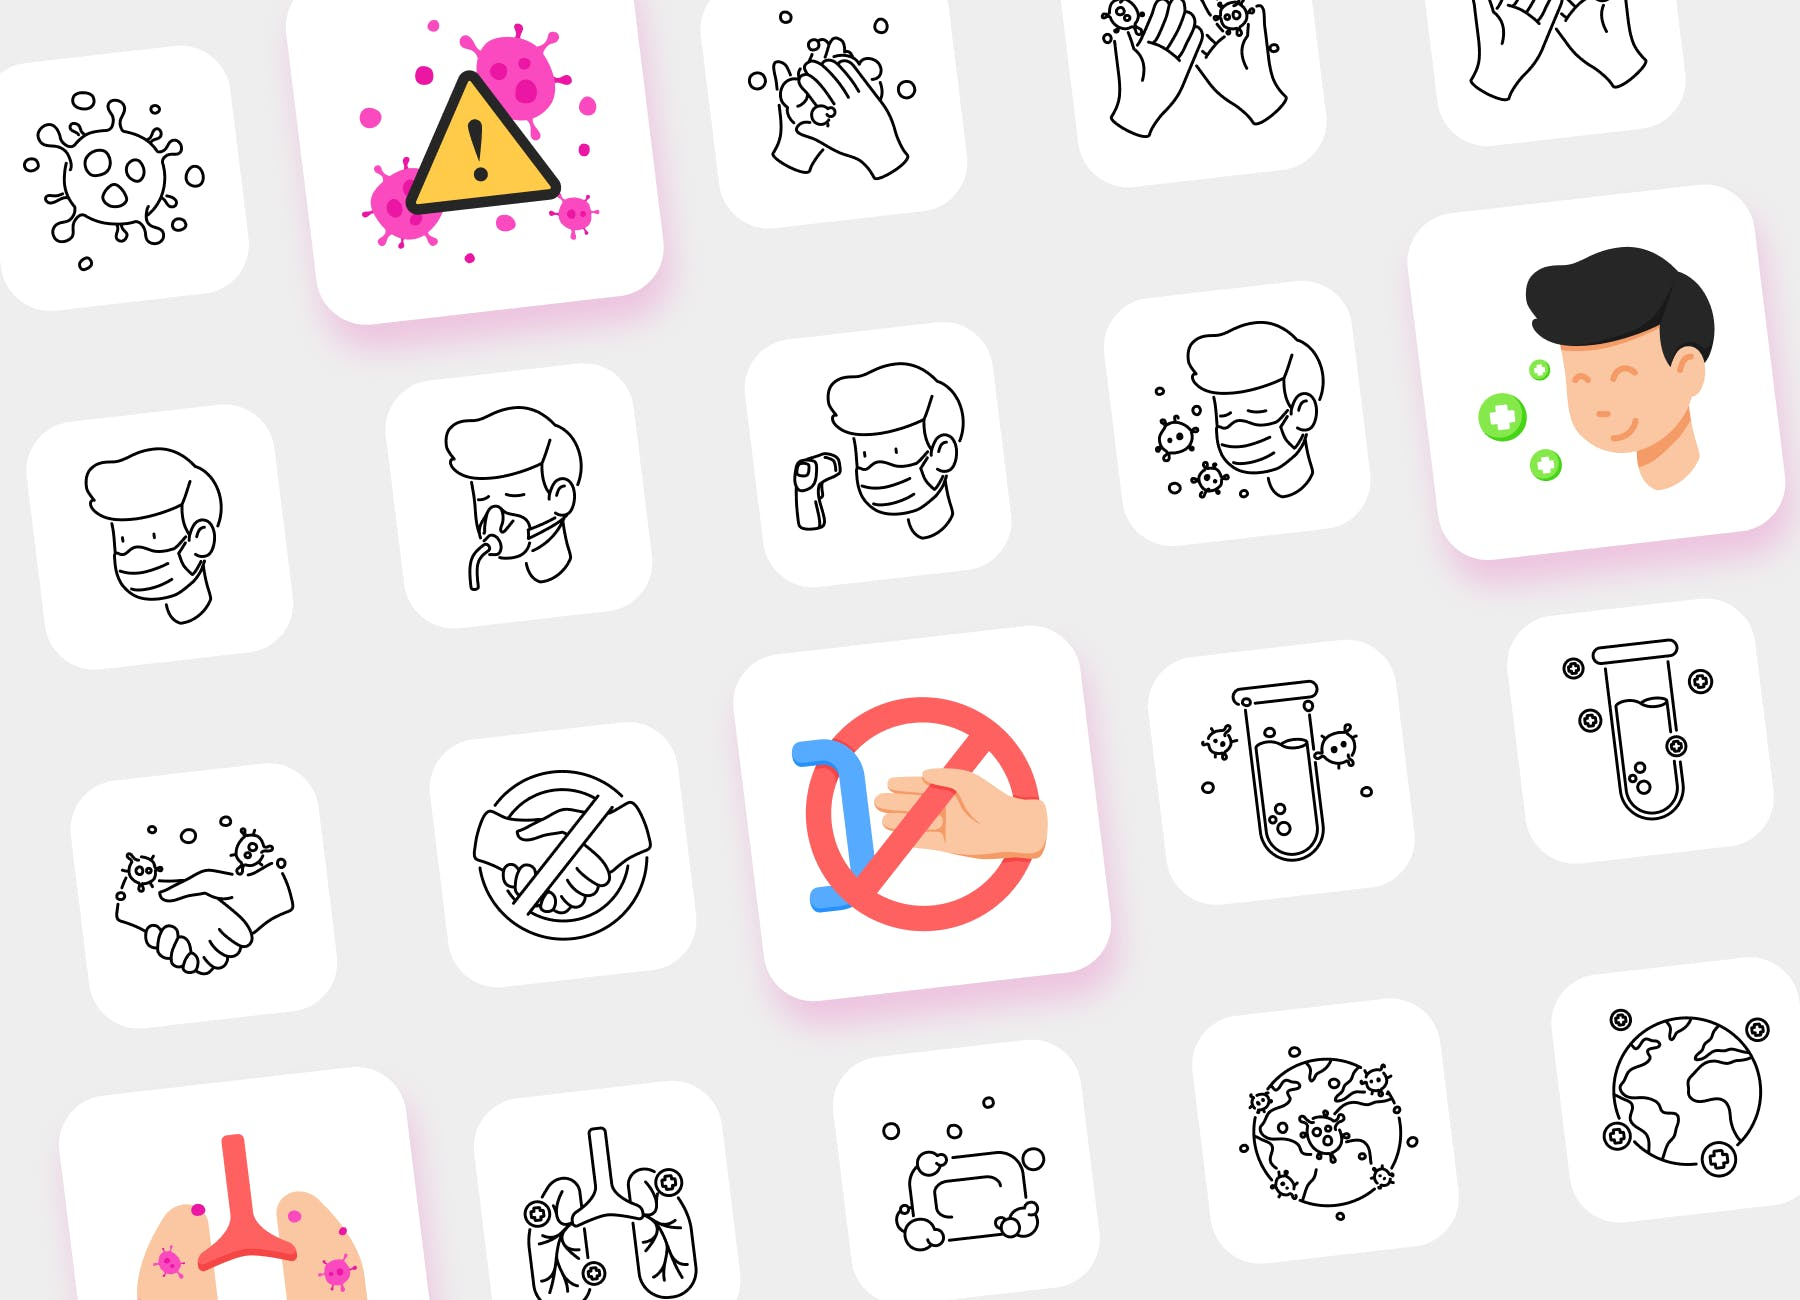 Preview of Covid-19 Icon Pack illustrations